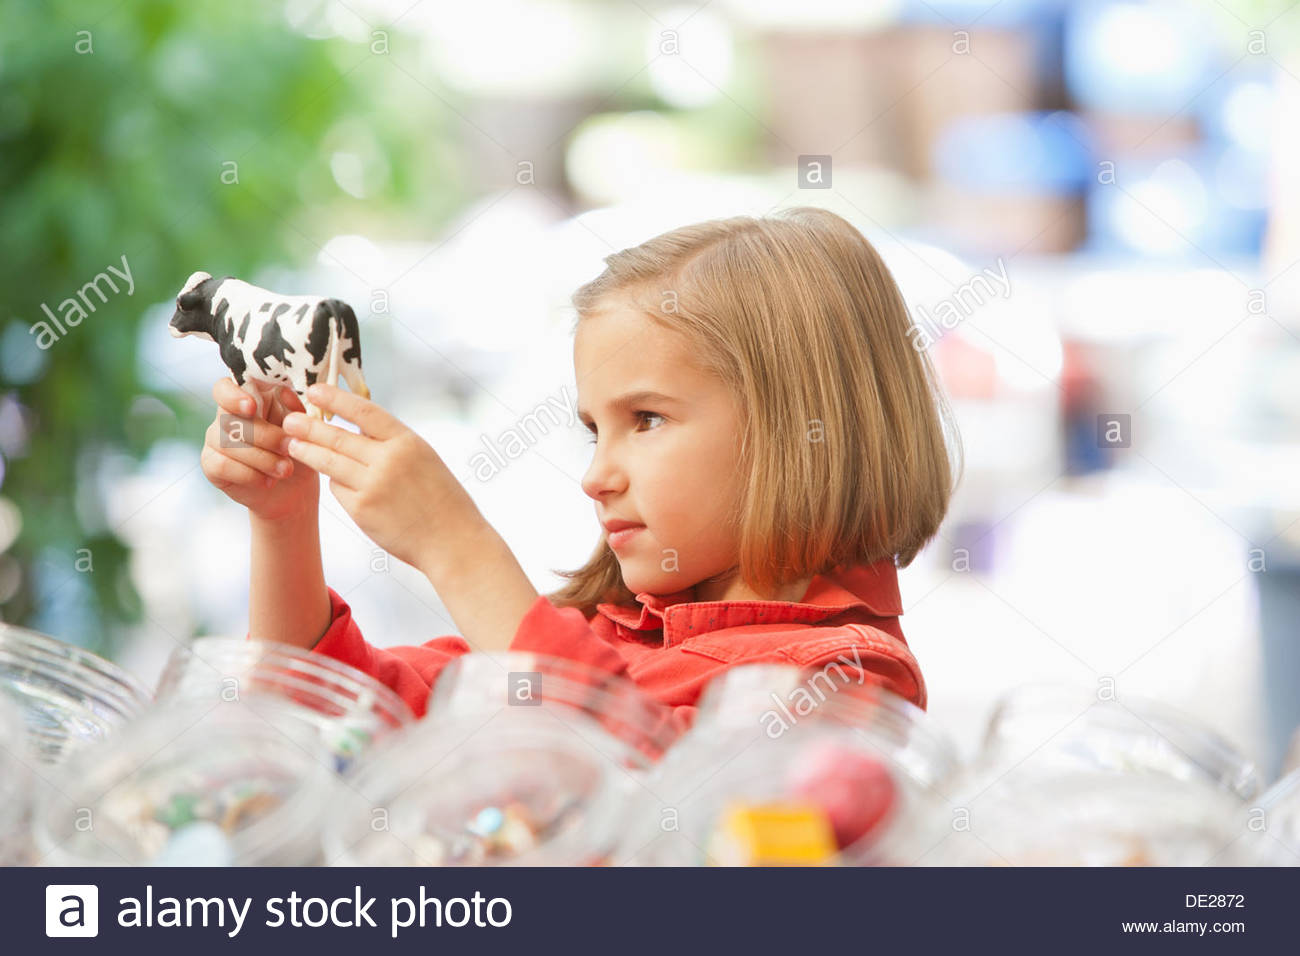 Girl shopping in toy store Photo Stock